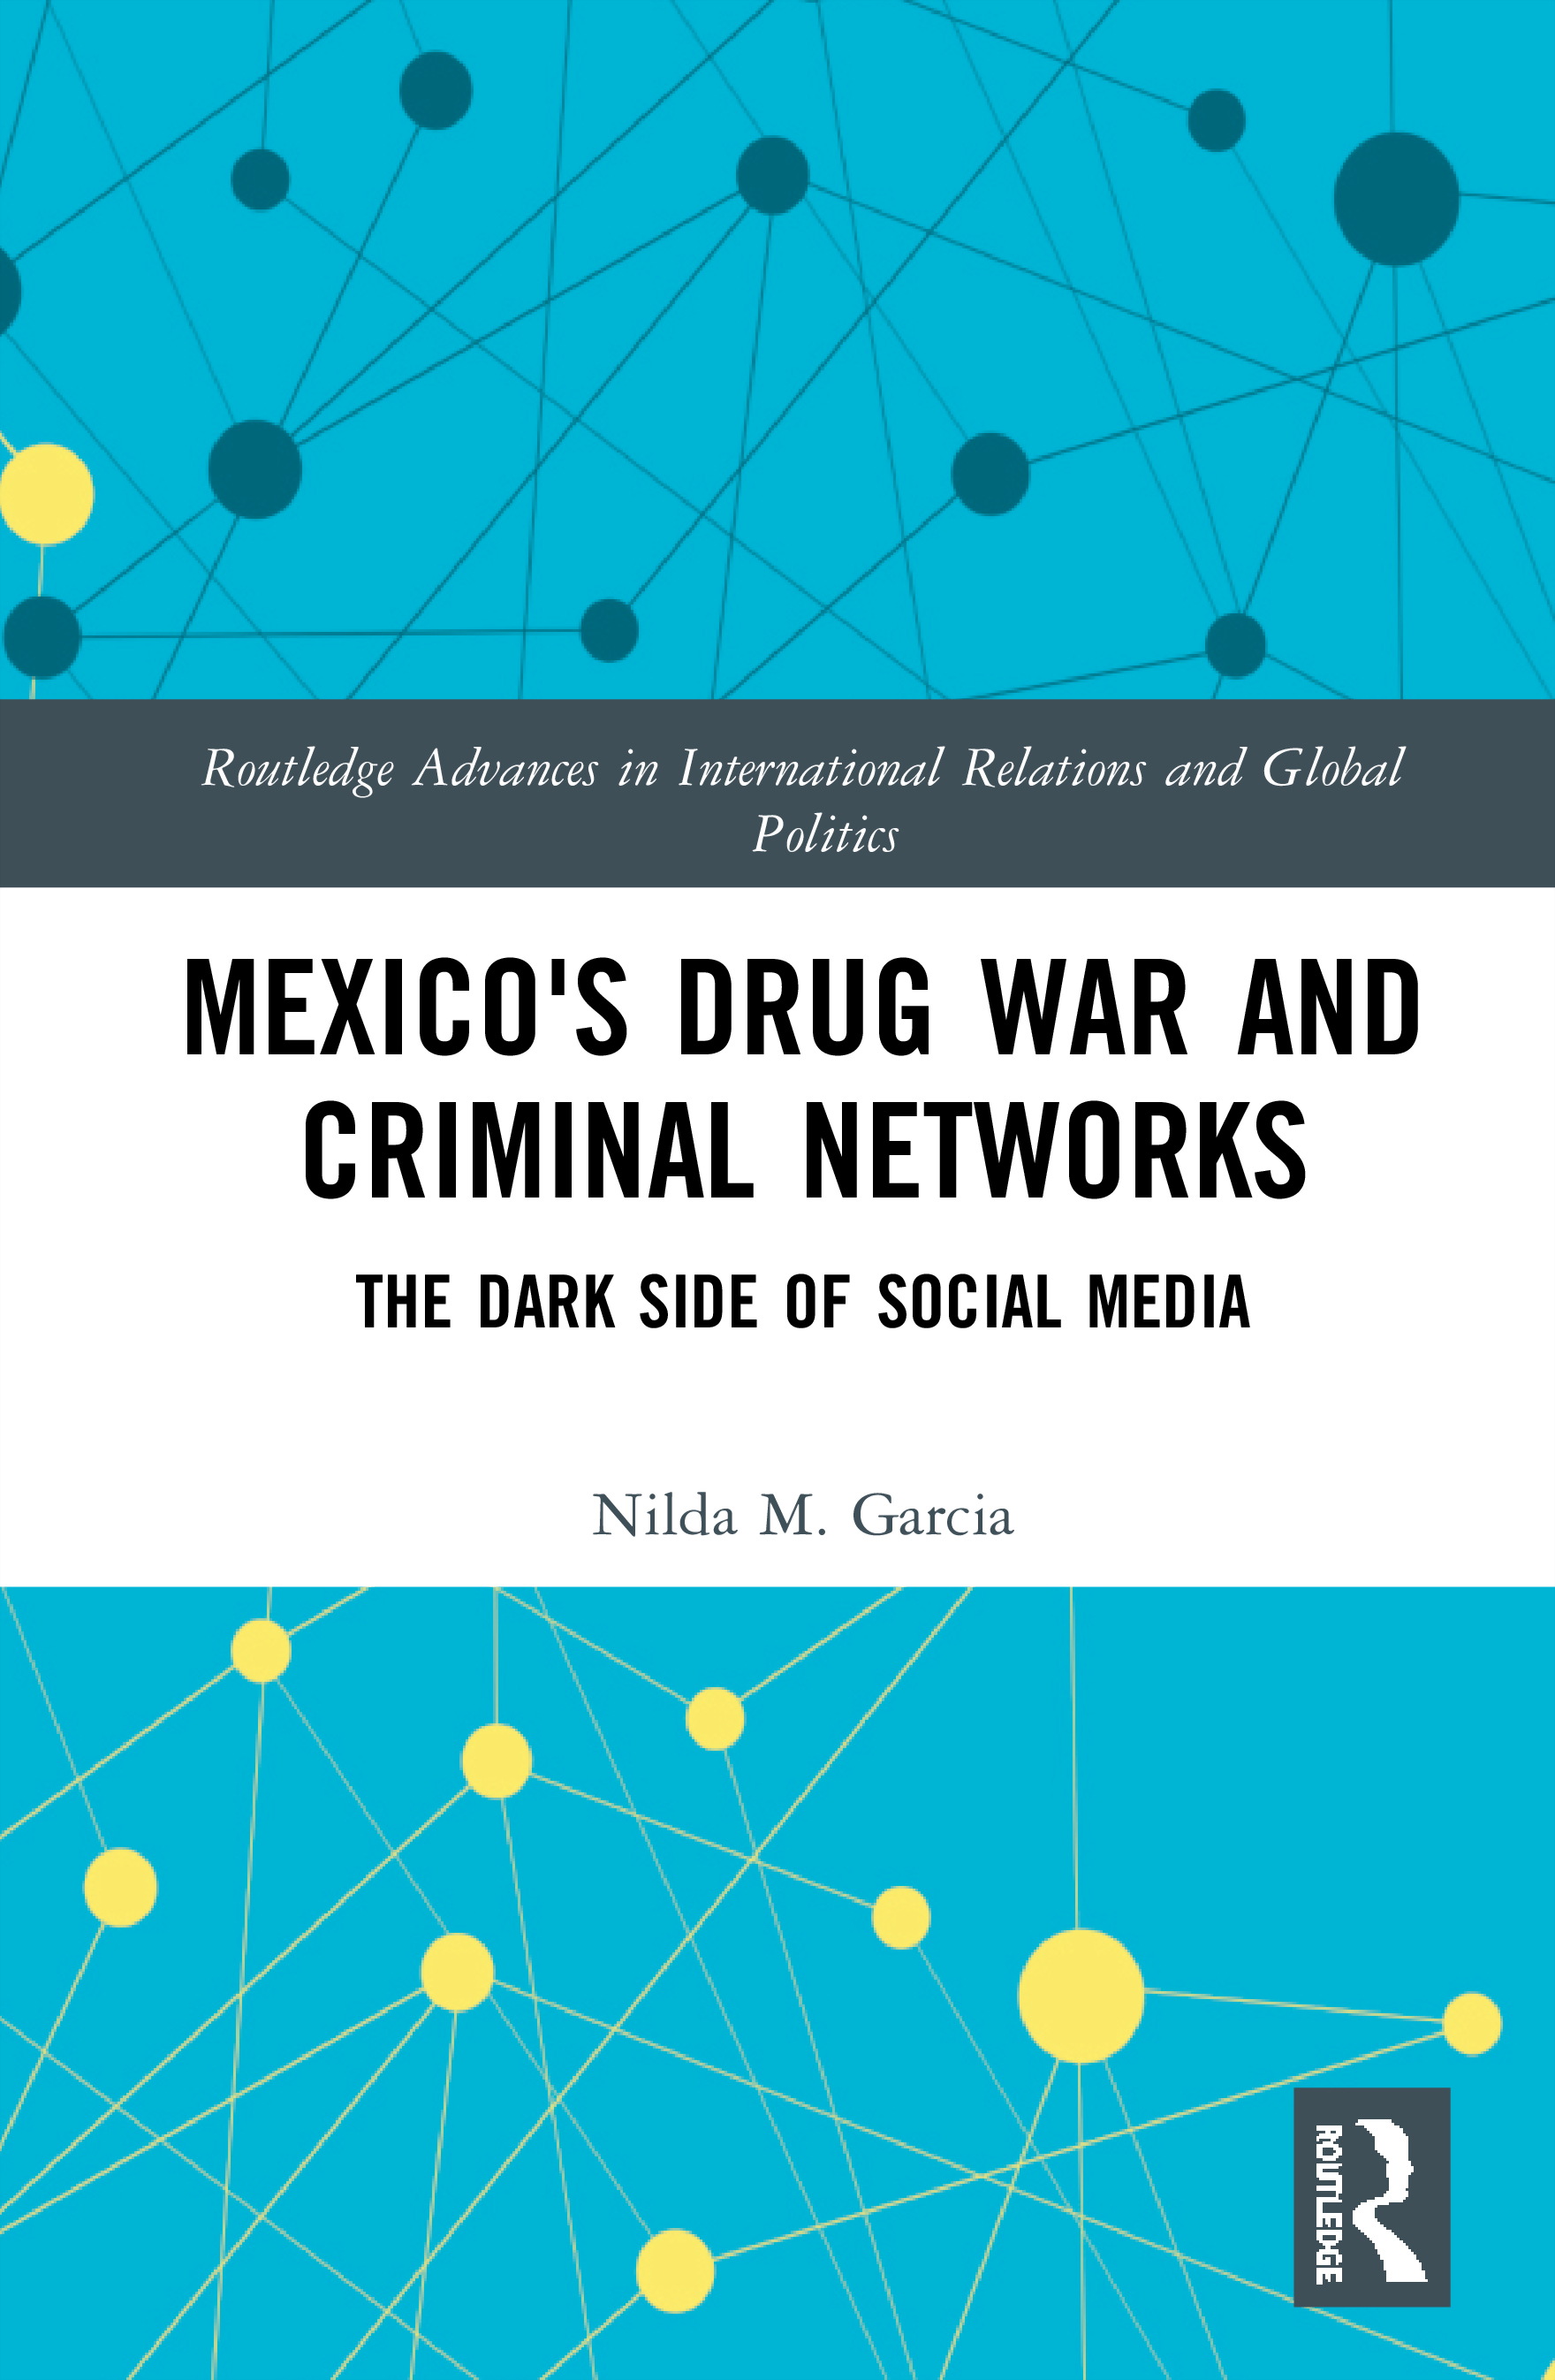 Mexico's Drug War and Criminal Networks: The Dark Side of Social Media book cover